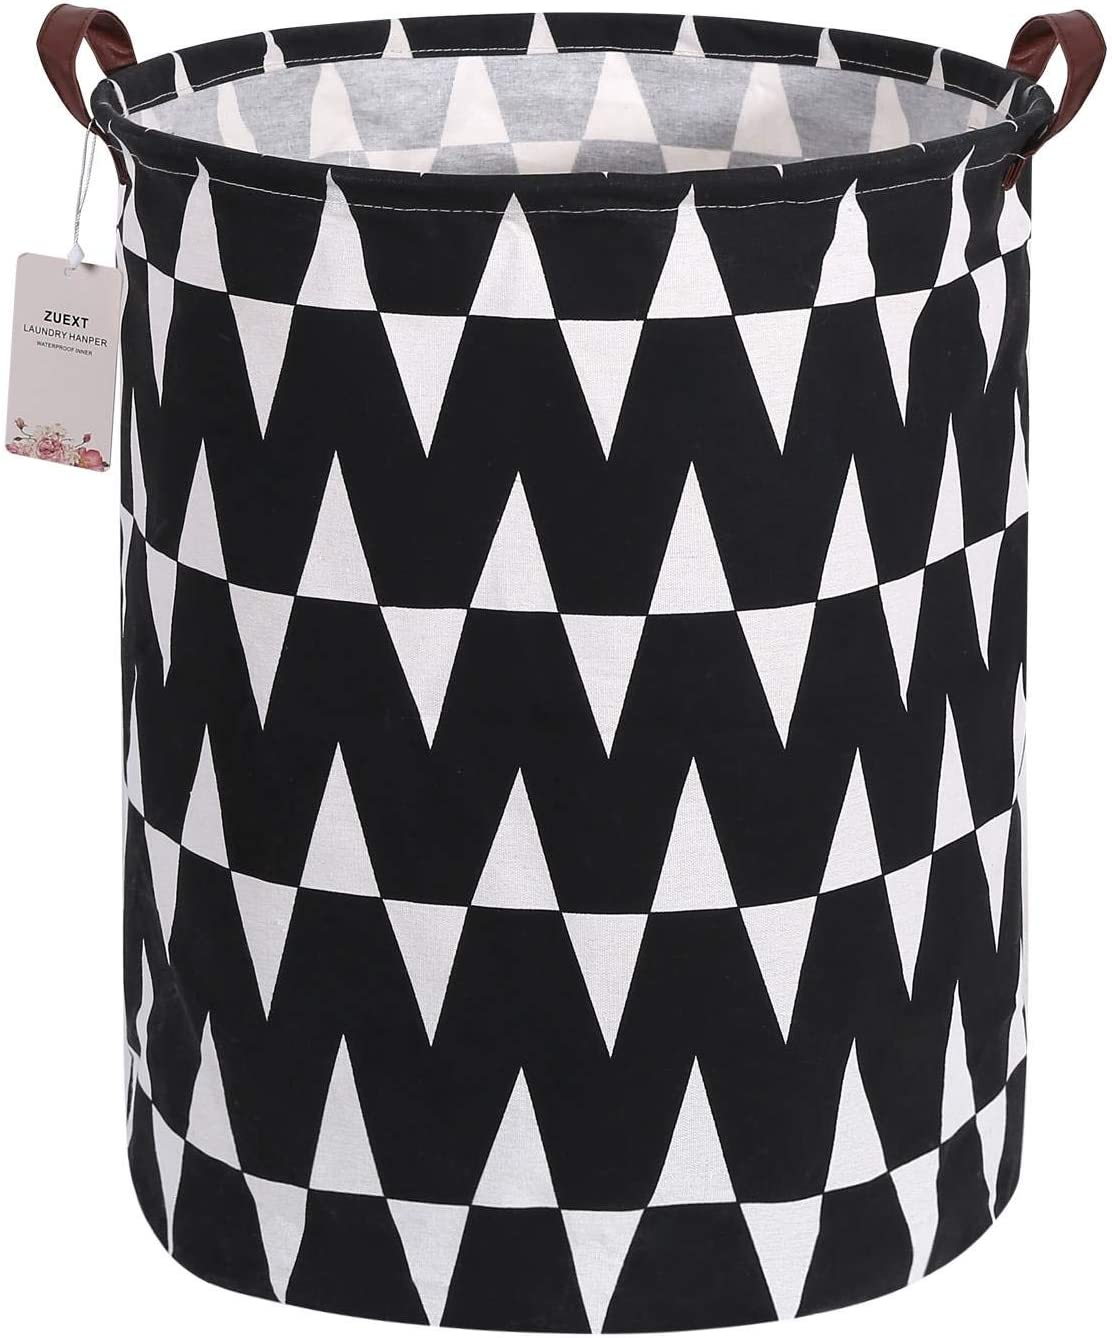 Extra Large Canvas Laundry Hamper Collapsible Storage Bin with Waves Design 19.7x15.7 Inch, ZUEXT Waterproof Cotton Linen Fabric Foldable Organizer Clothes Laundry Baskets for Kids Nursery Bedroom